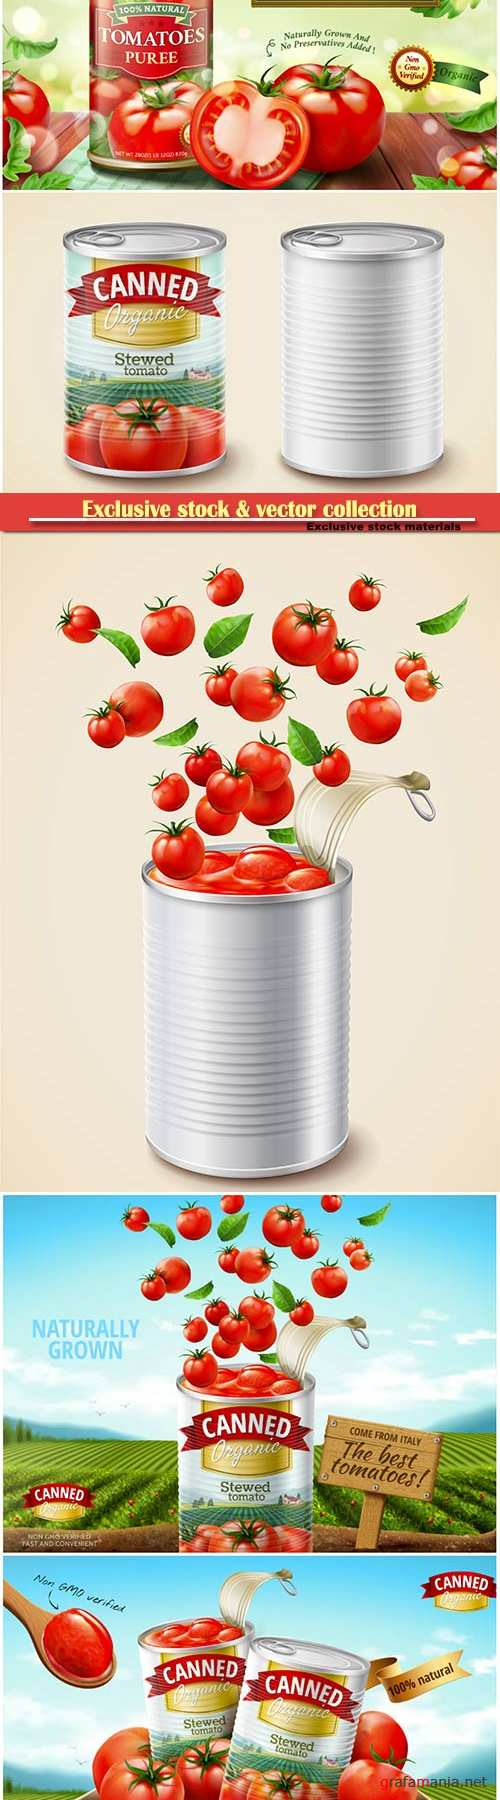 Canned tomato puree ads with fresh vegetables in 3d illustration